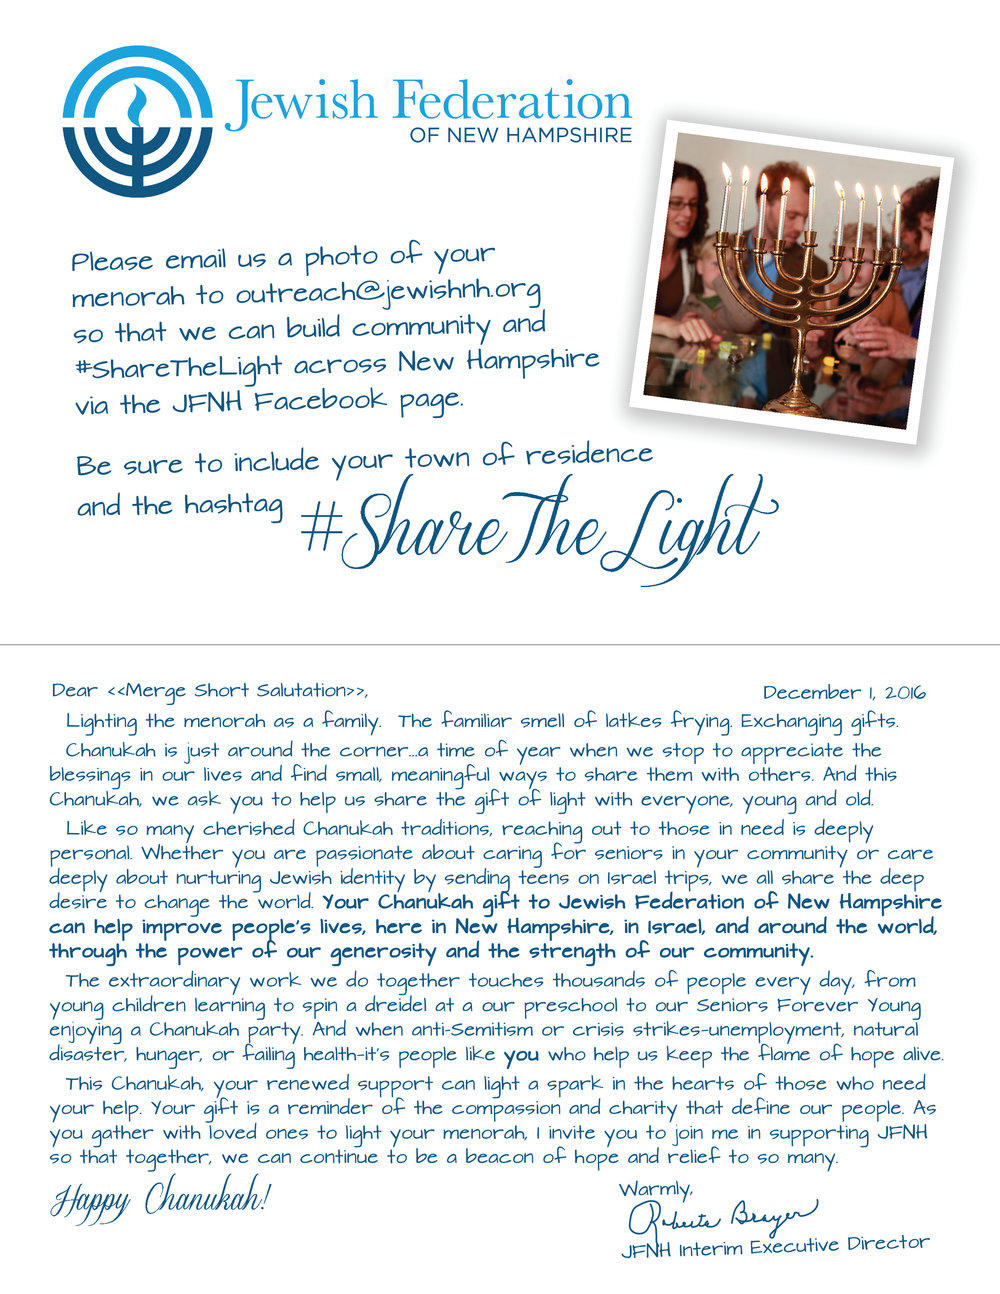 Sharethelight-card-inside3-savron-01.jpg